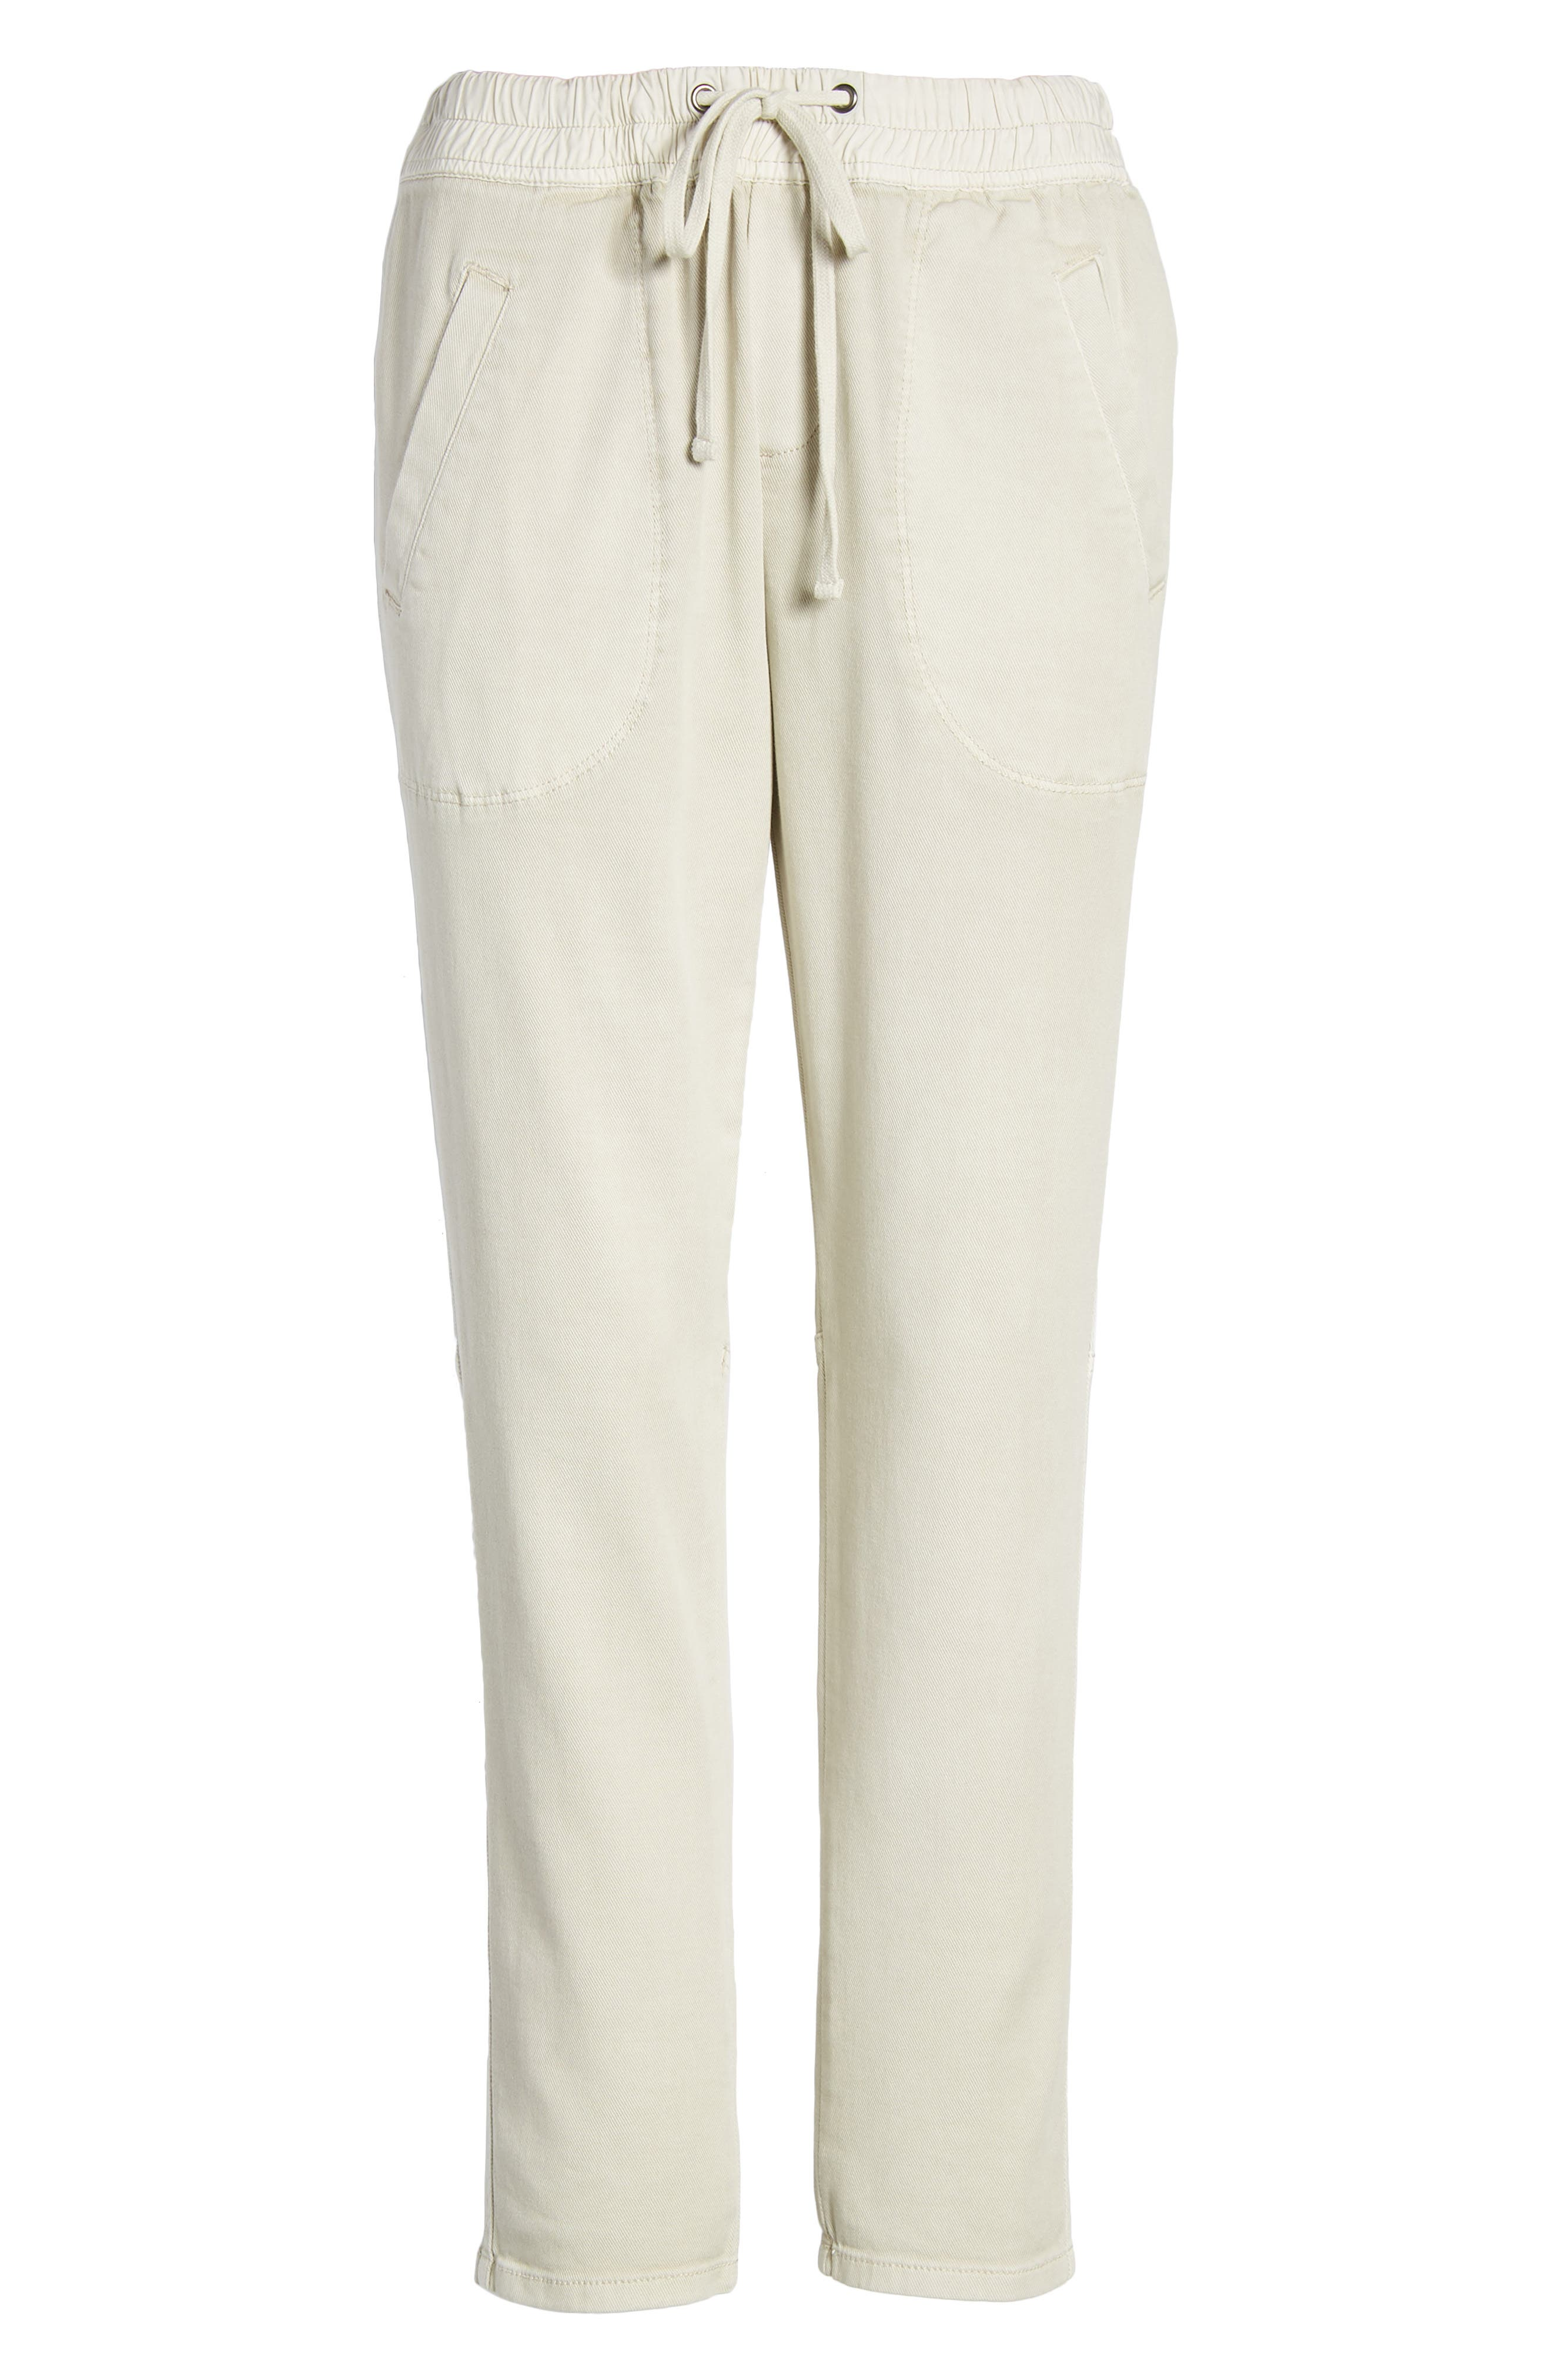 Modern Utility Pants,                         Main,                         color, Putty